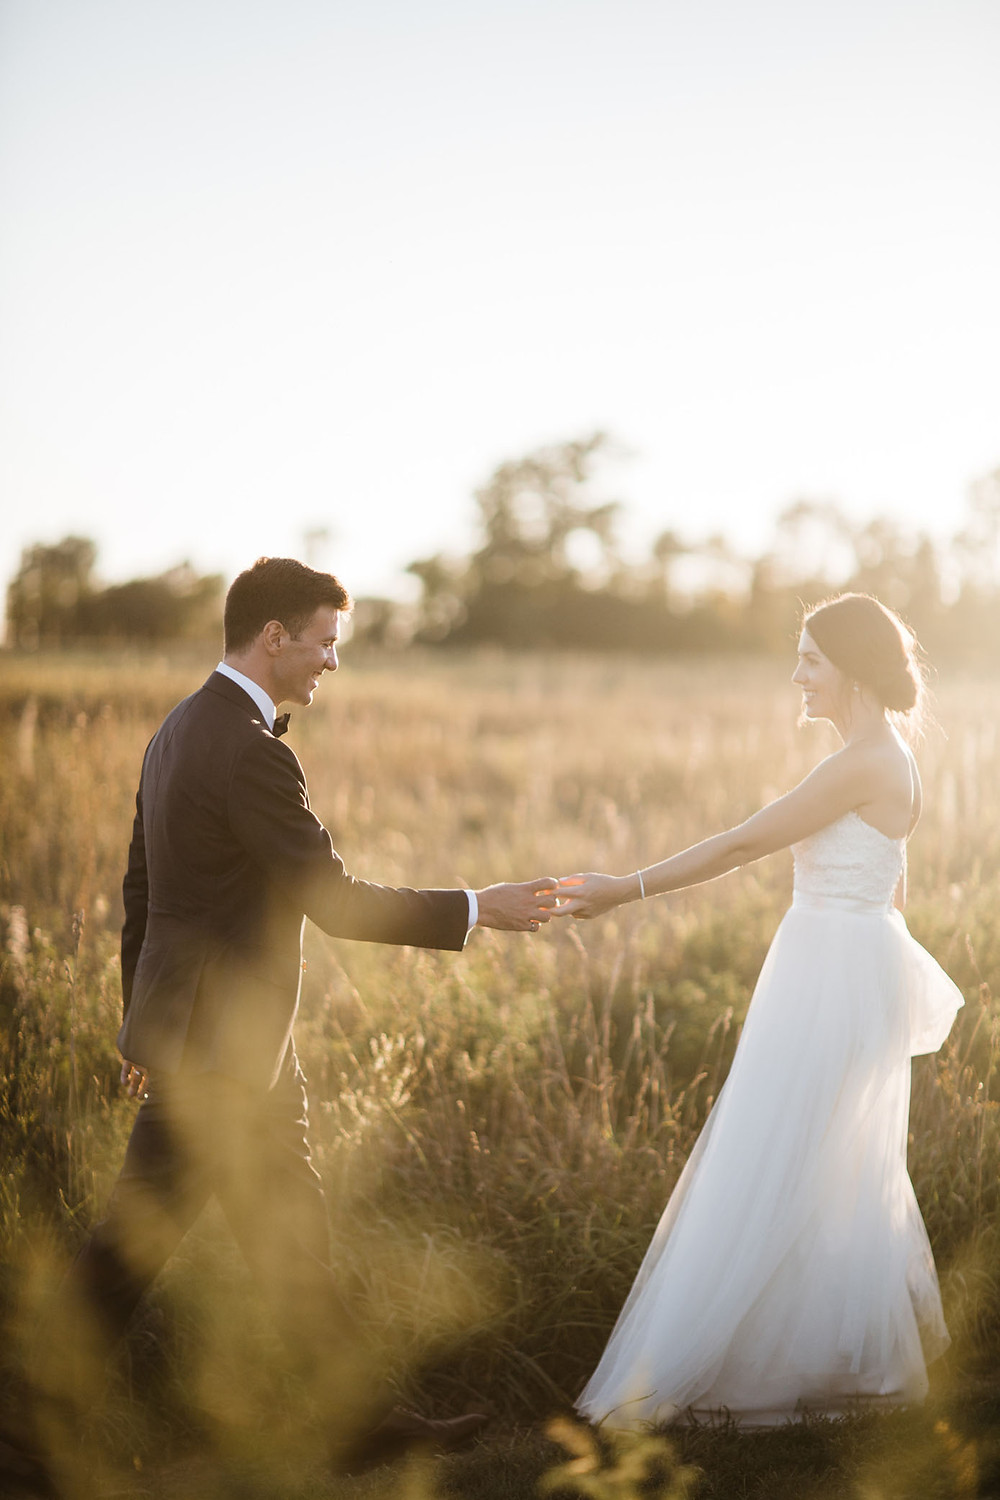 vineyard bride and groom wedding photography huff estates winery sunset